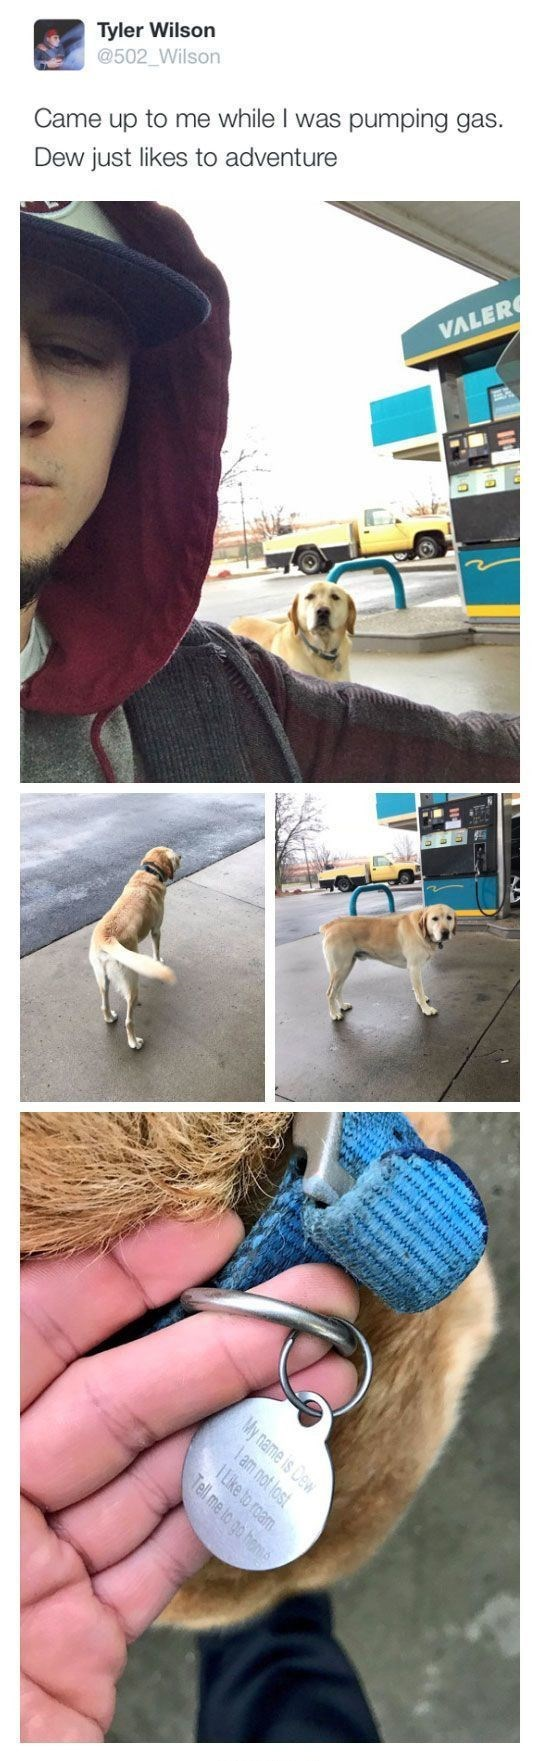 wholesome meme - Dog - Tyler Wilson @502 Wilson pumping gas. Came up to me while I was Dew just likes to adventure VALER E am not lost My name is Dew 1 Like to roam Tell me to go heme